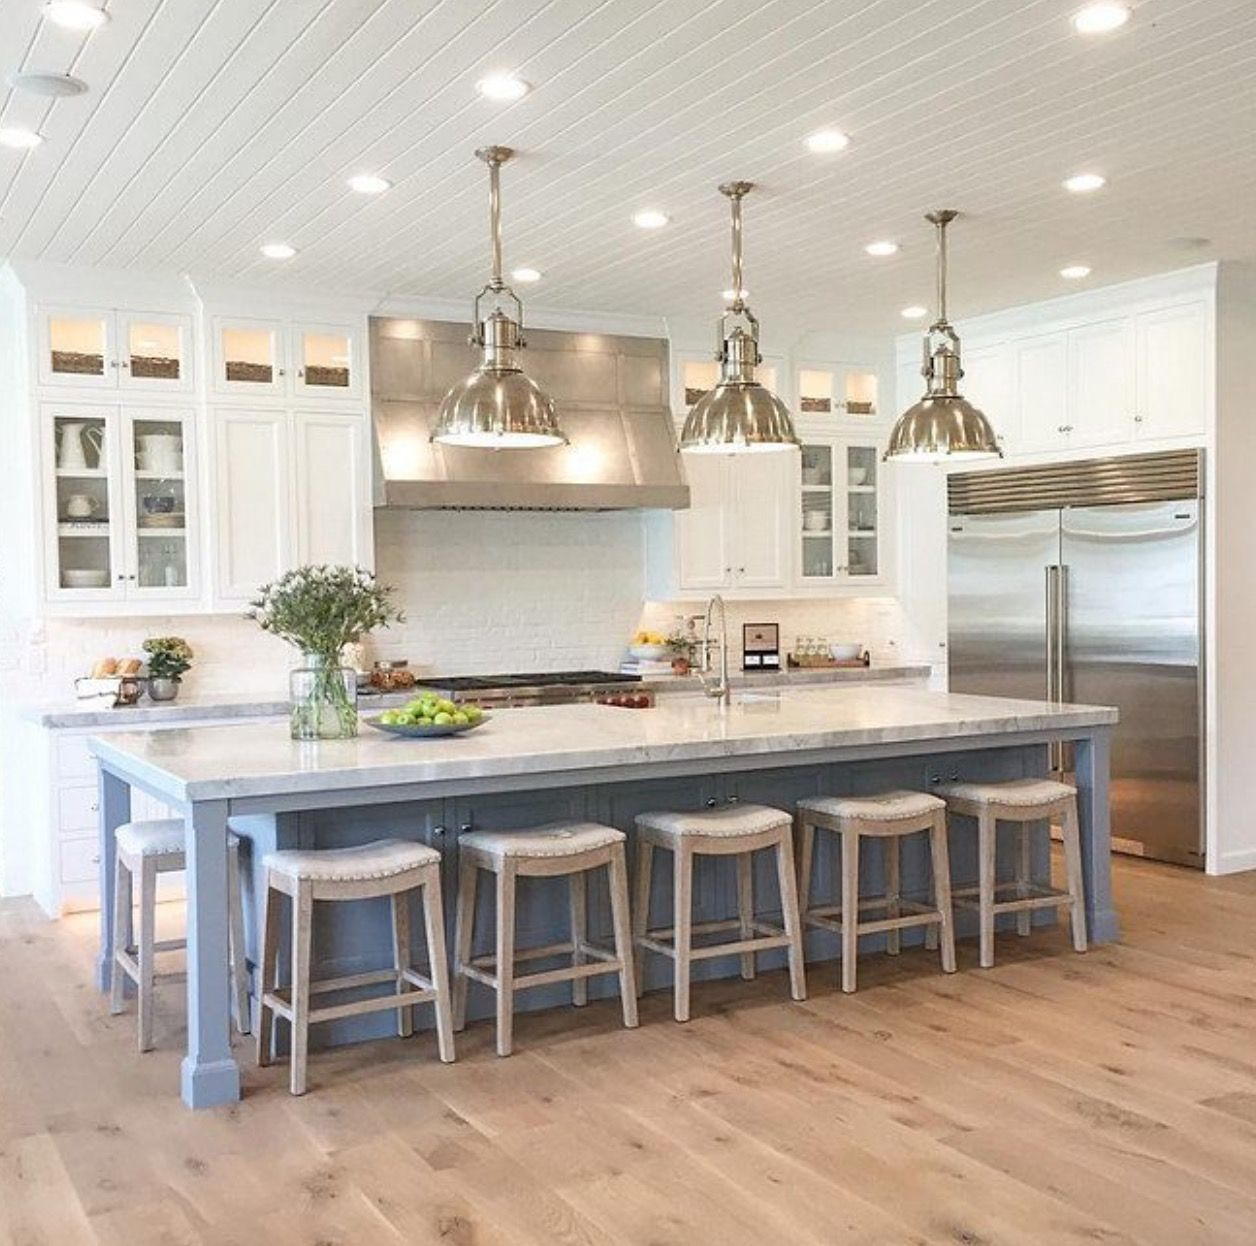 Kitchen Island With Seating Example Of Bar Size Different Color Scheme Kitchens